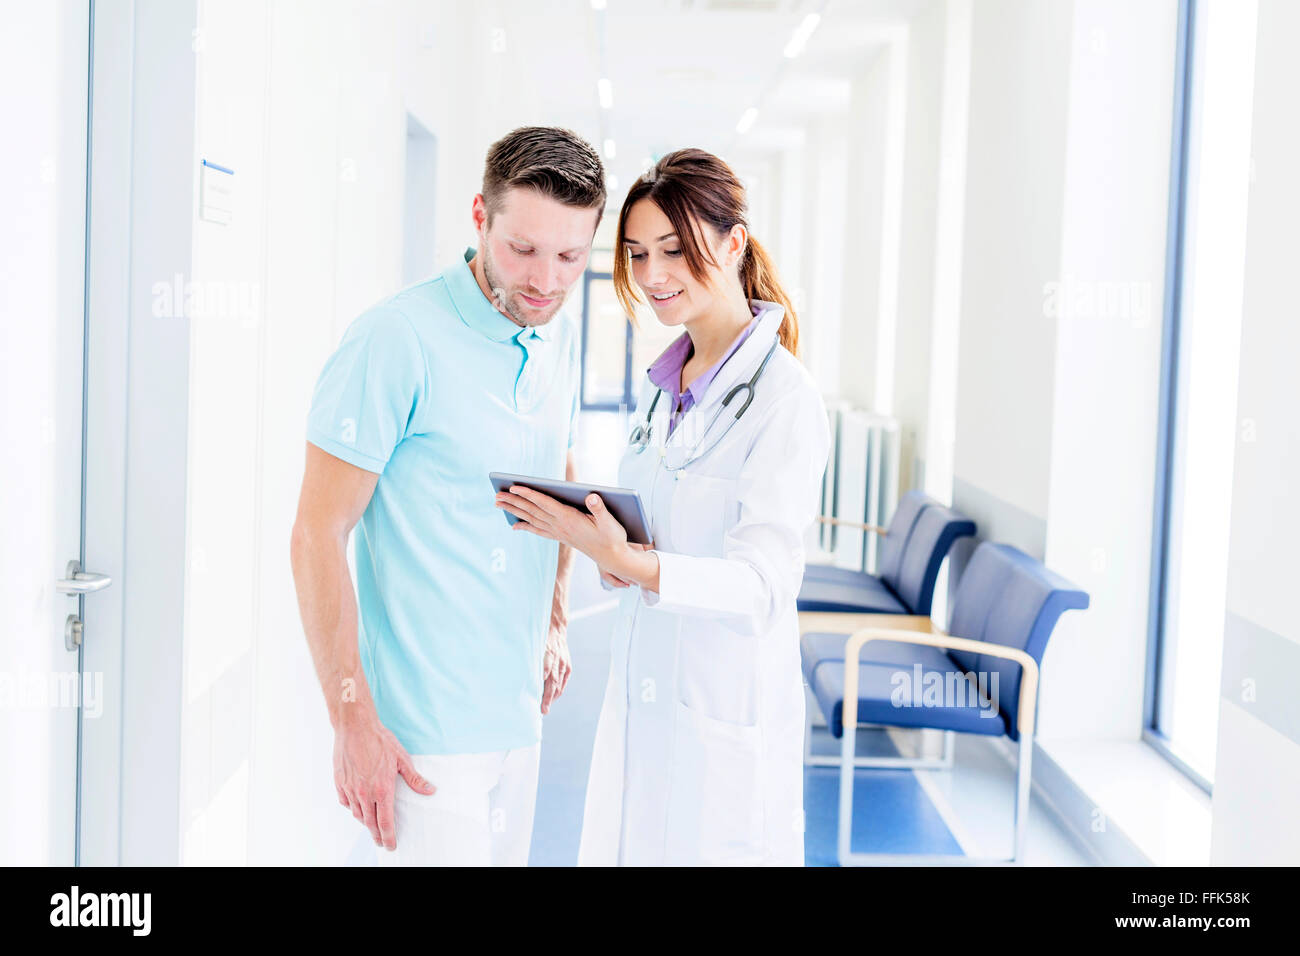 Male and female doctor in hospital corridor using digital tablet - Stock Image